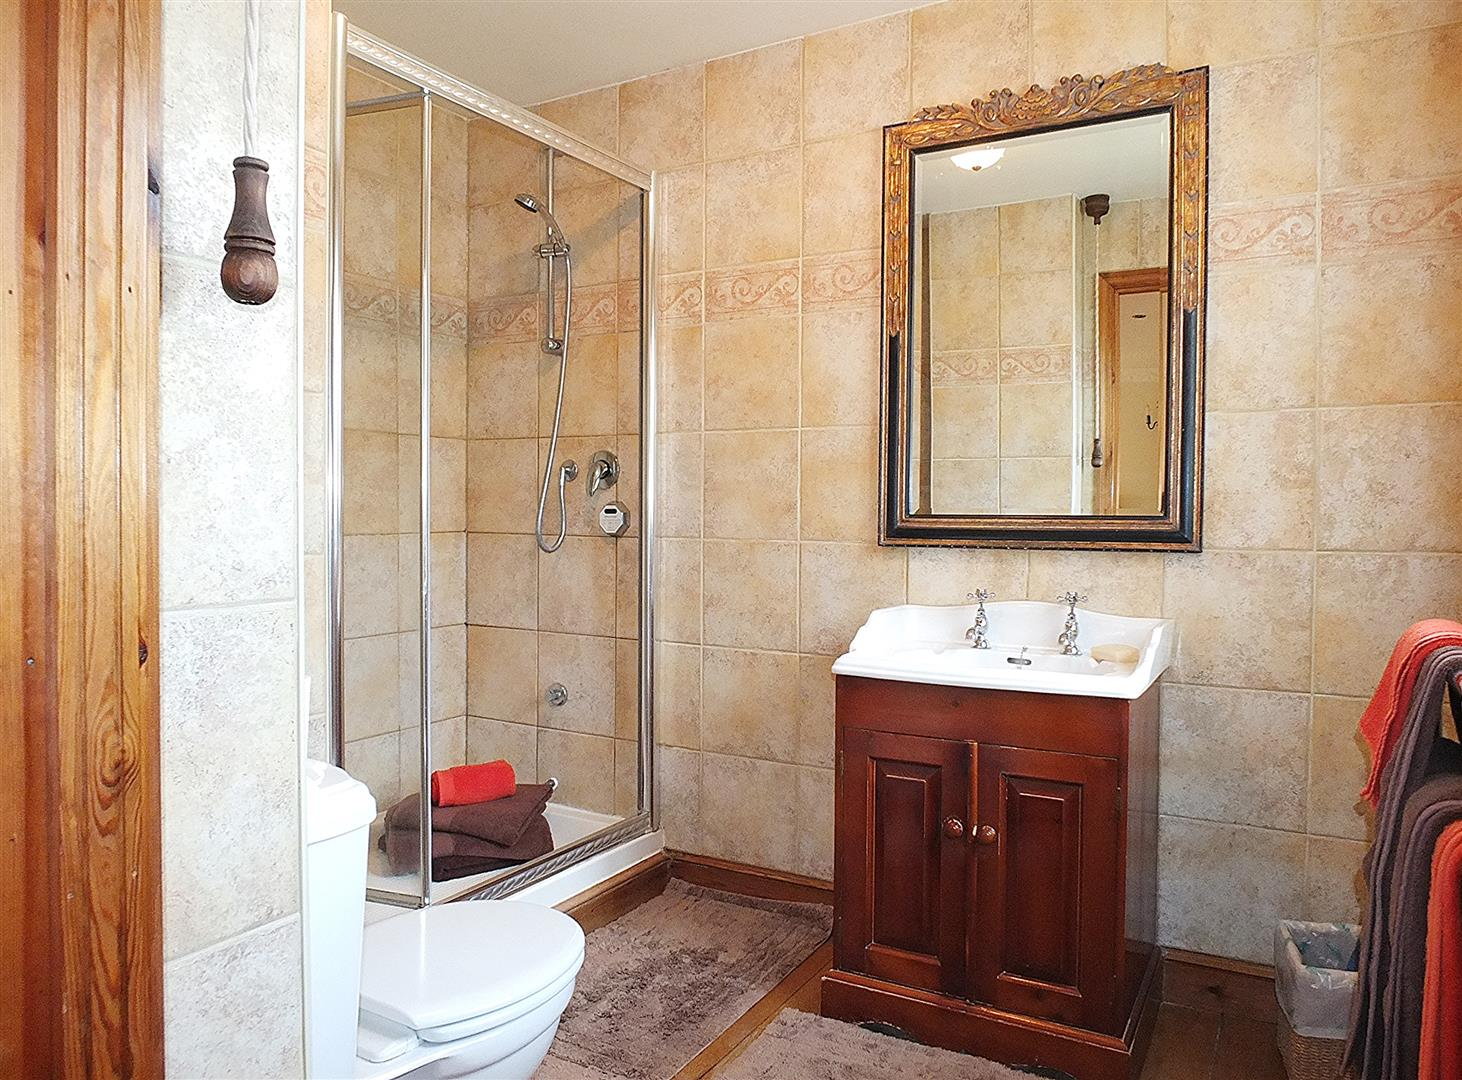 5 bed detached house for sale in Boston, PE20 2DB  - Property Image 17